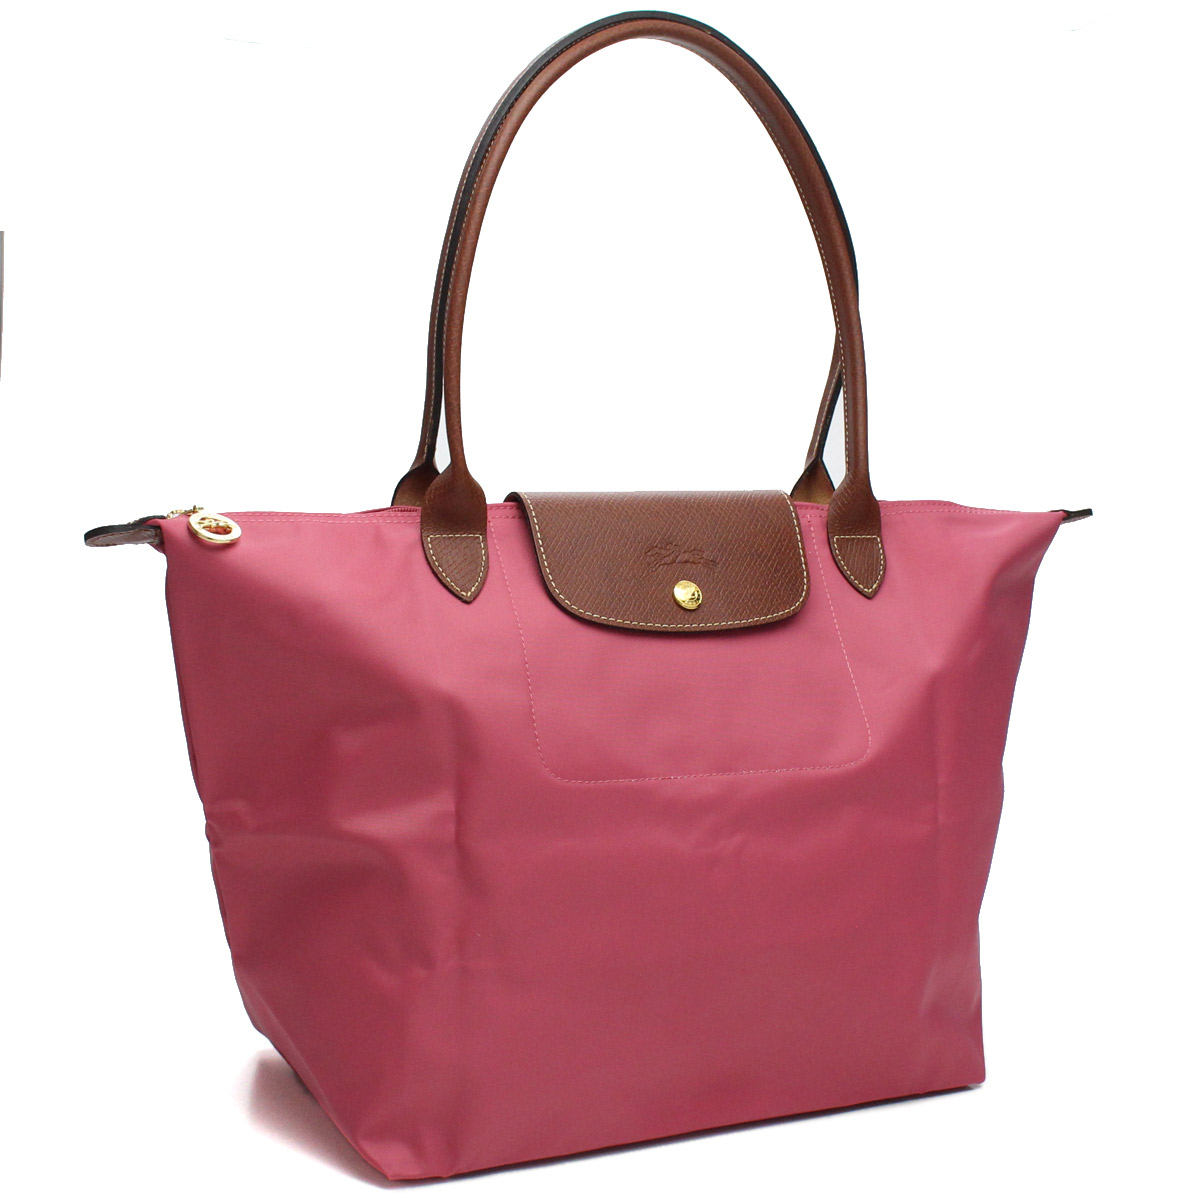 f183748147 Bighit The total brand wholesale: Longchamp (LONGCHAMP) LE PLIAGE  ルプリアージュトートバッグ S 1899 089 A27 pink system | Rakuten Global Market